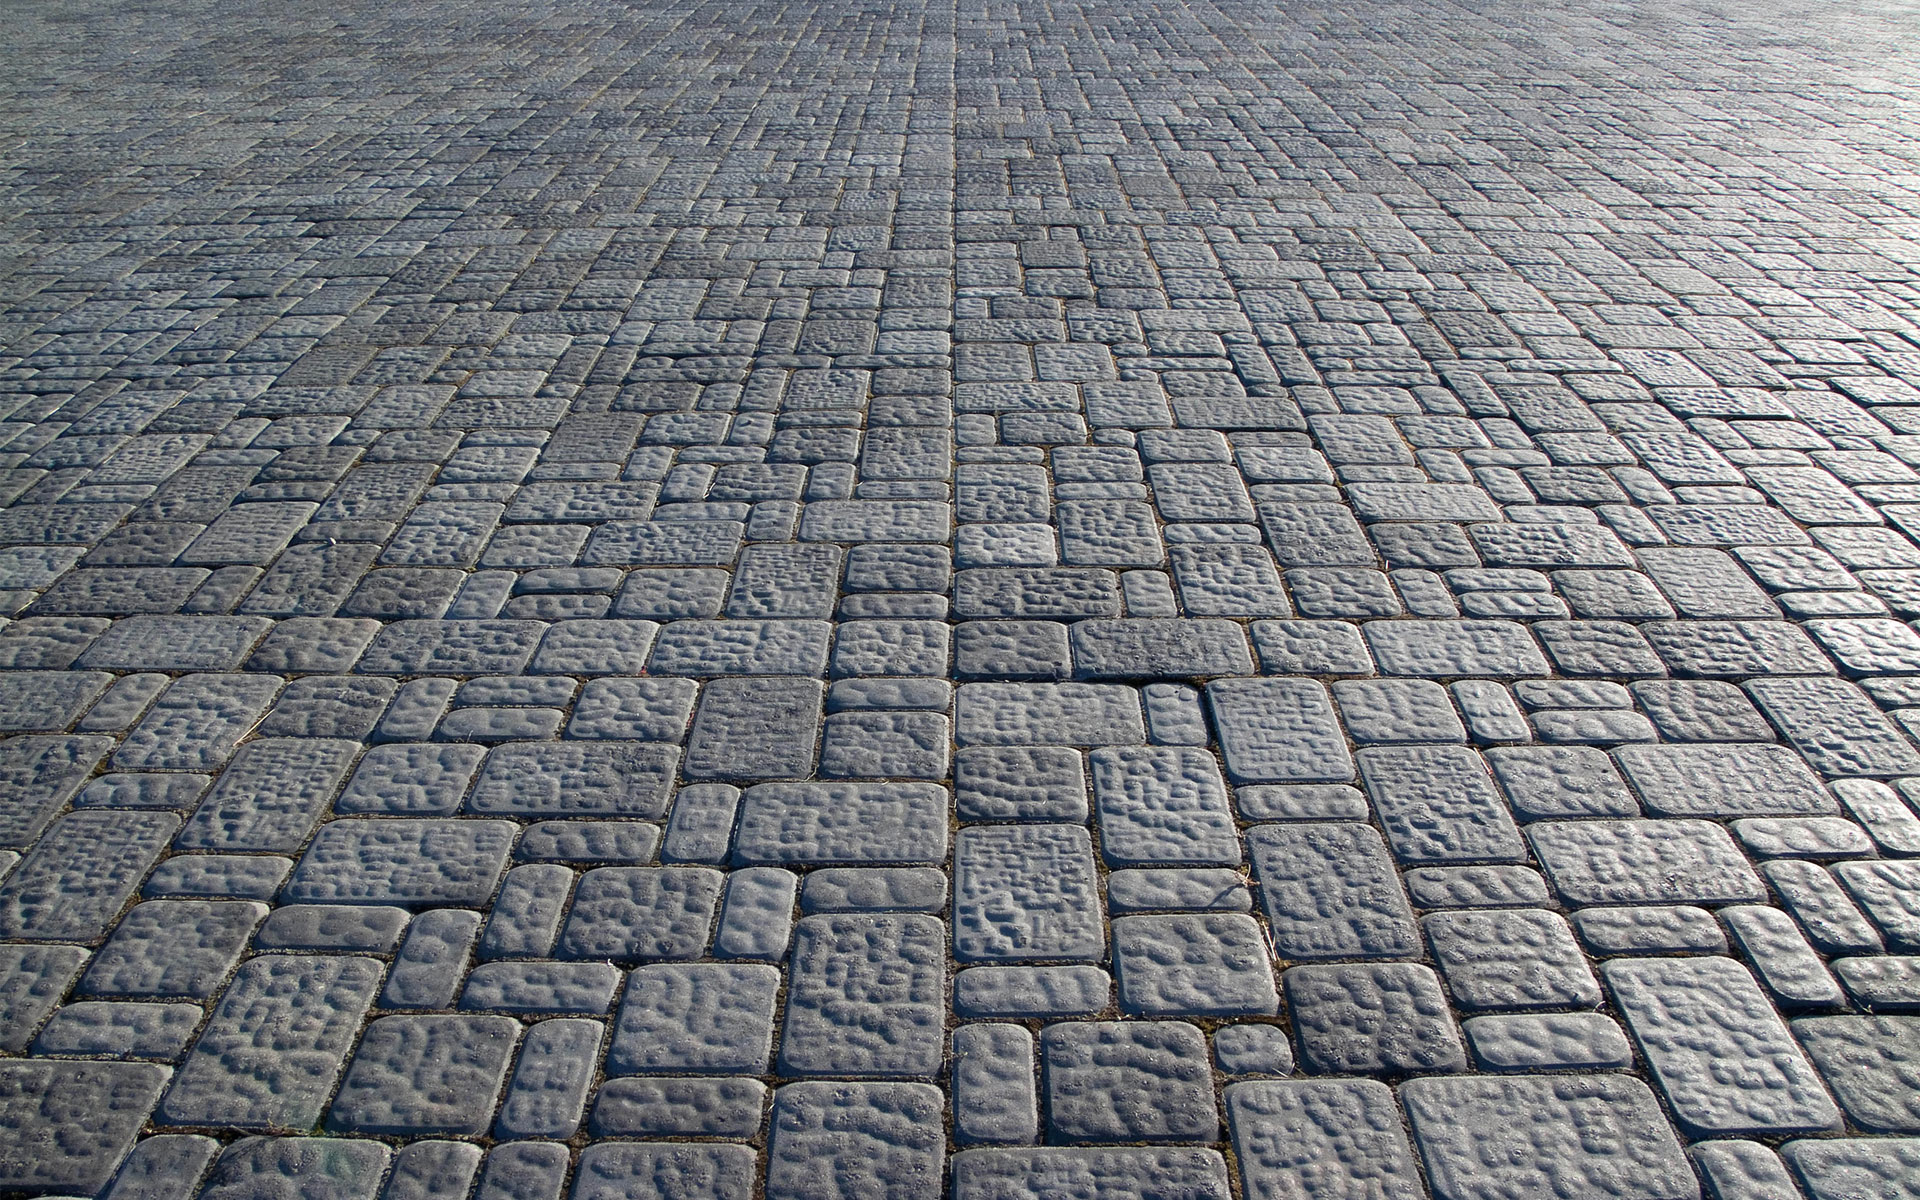 Pavement wallpaper 38811 1920x1200 px hdwallsource com